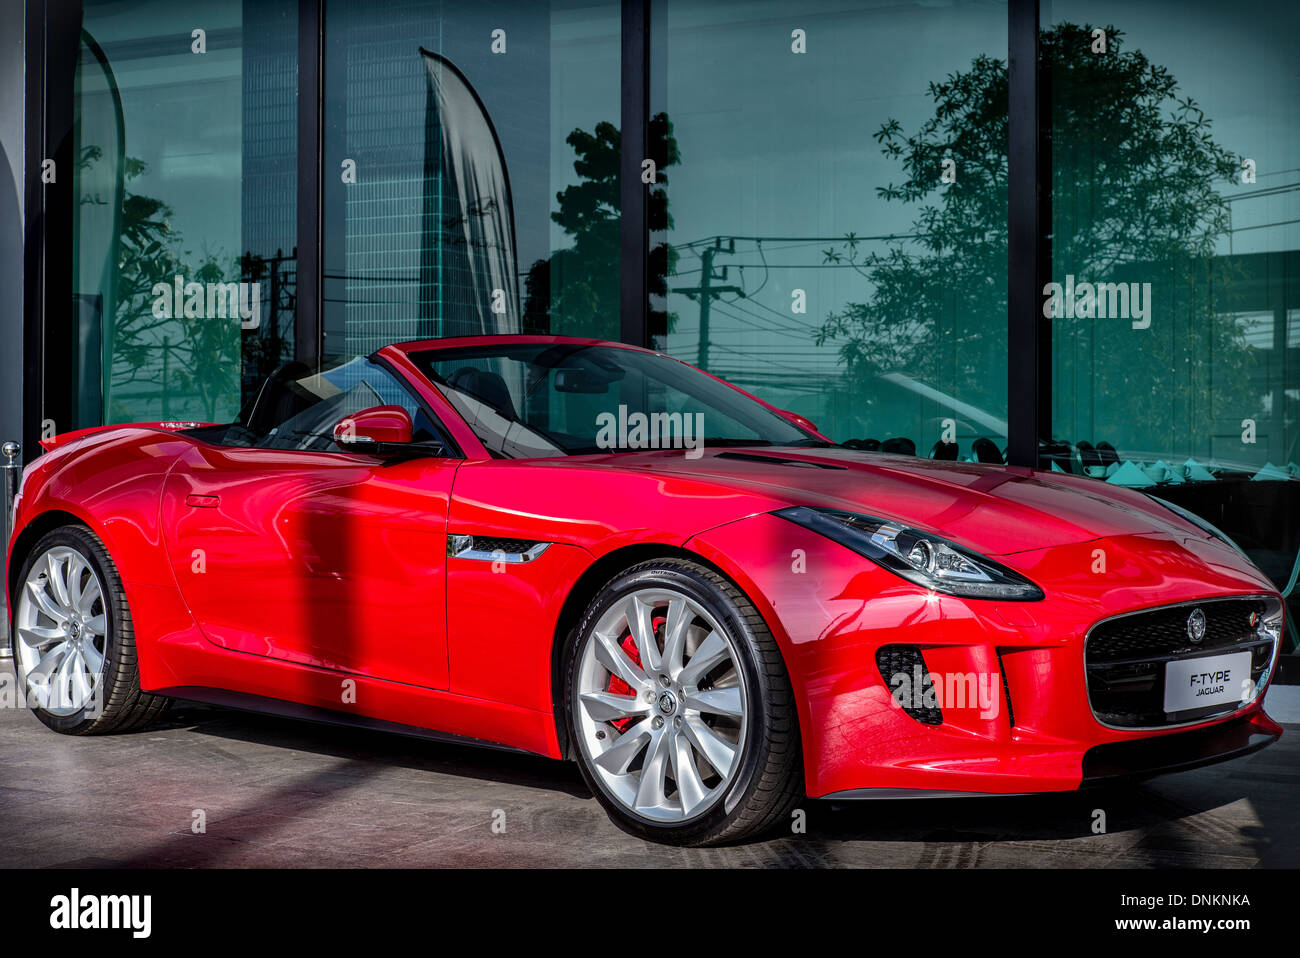 Full Length Side View Of A Red Jaguar F Type British Convertible Sports Car  In Red